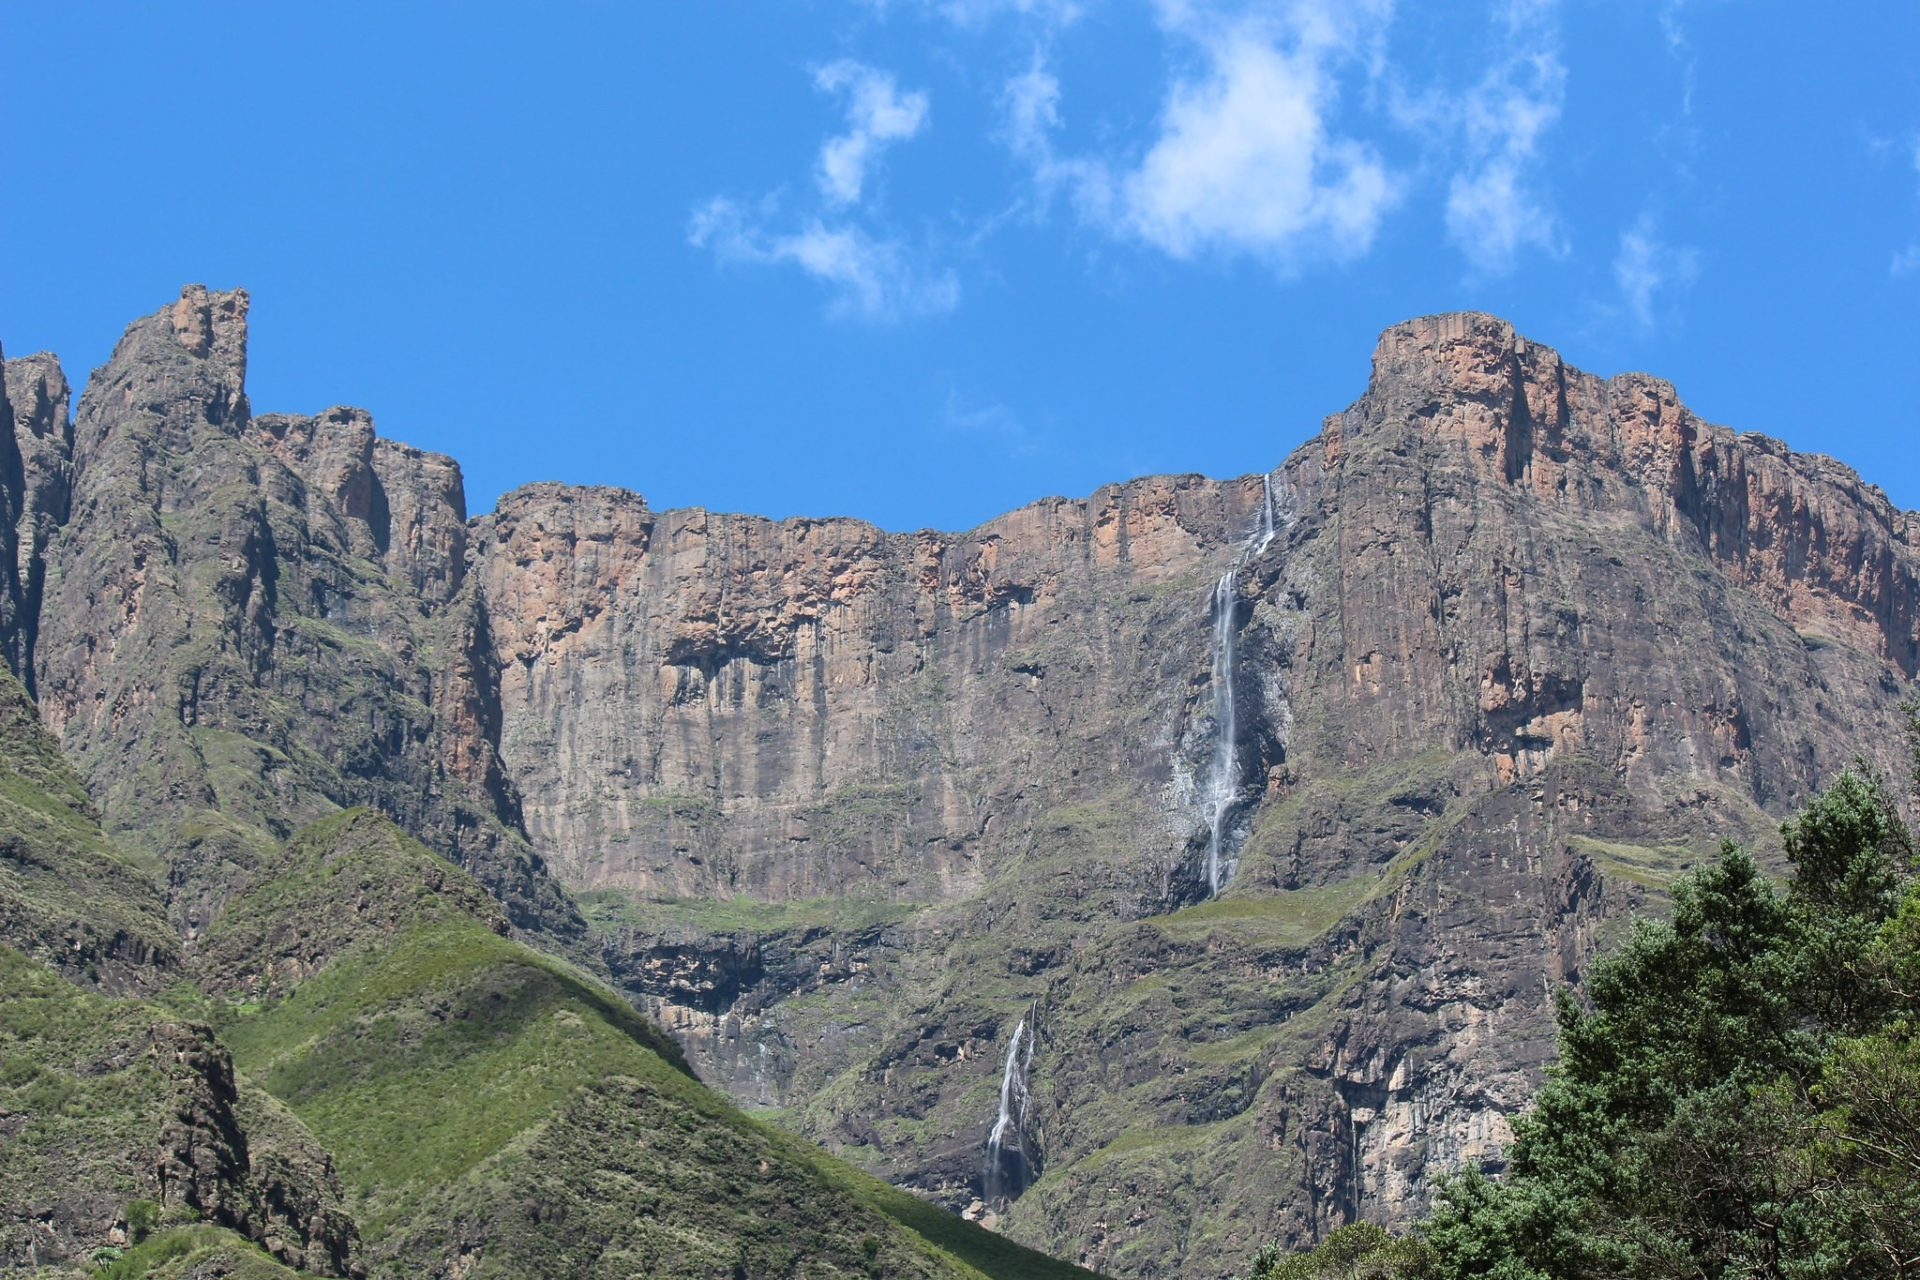 Tugela Falls, Drakensberg, Royal Natal National Park, South Africa